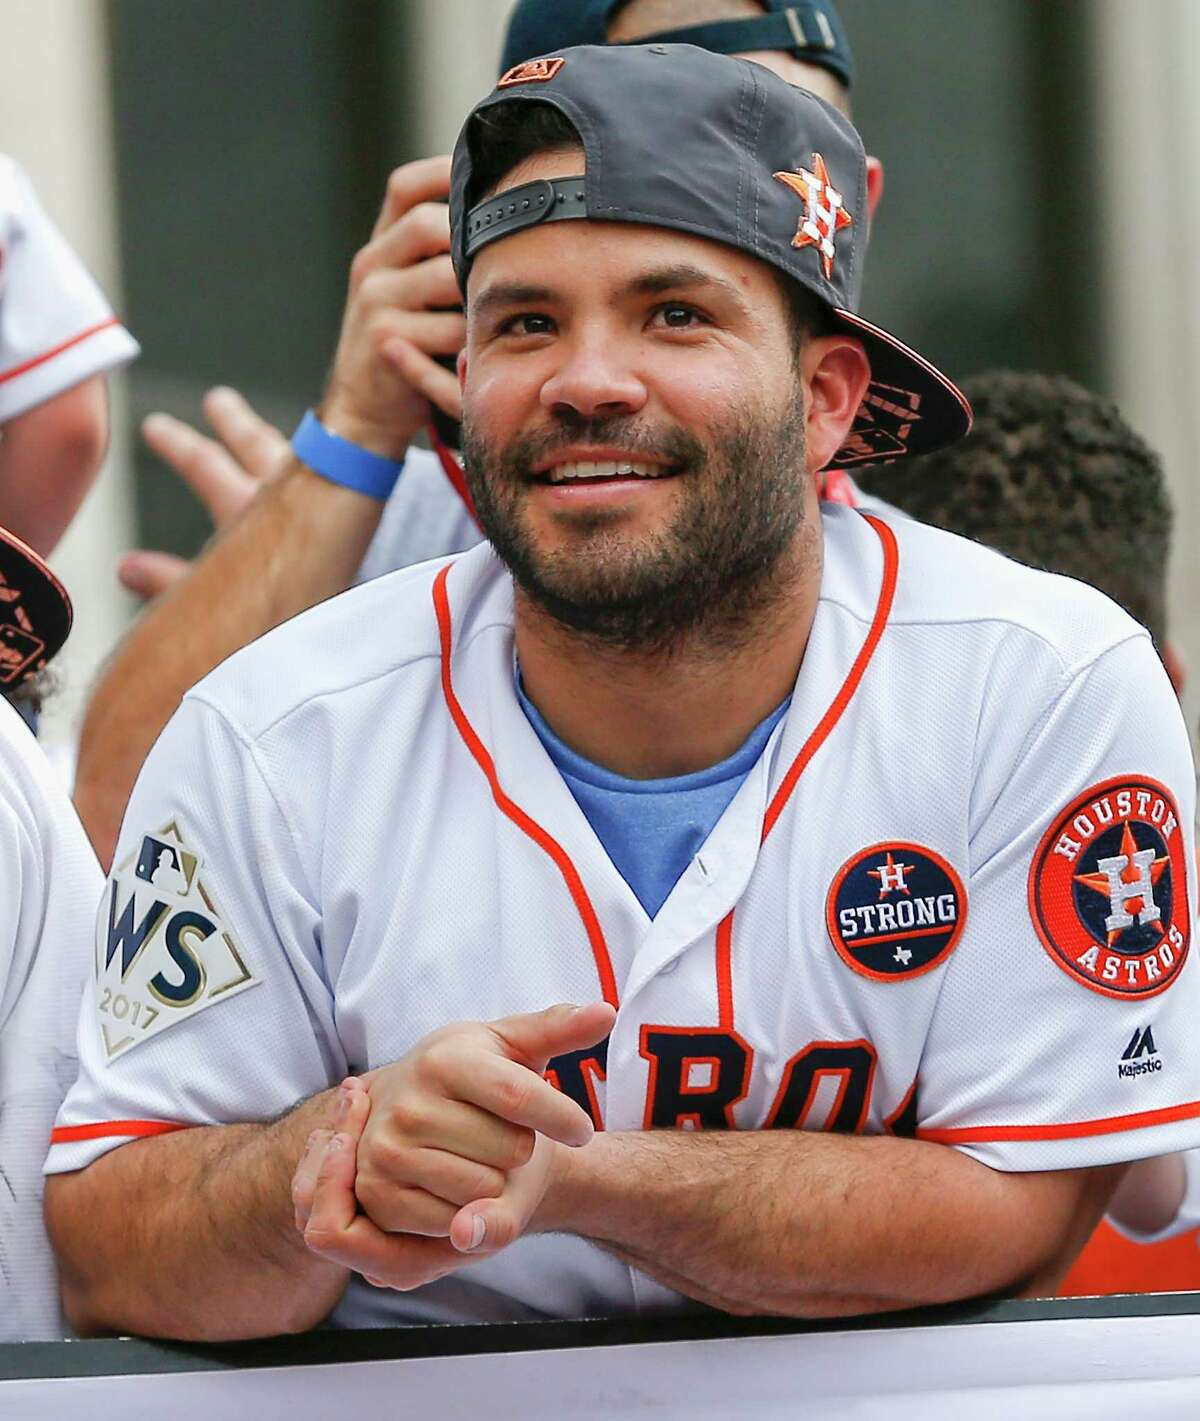 Jose Altuve of the Houston Astros looks out at the crowd during the Houston Astros Victory Parade on November 3, 2017 in Houston, Texas. The Astros defeated the Los Angeles Dodgers 5-1 in Game 7 to win the 2017 World Series.